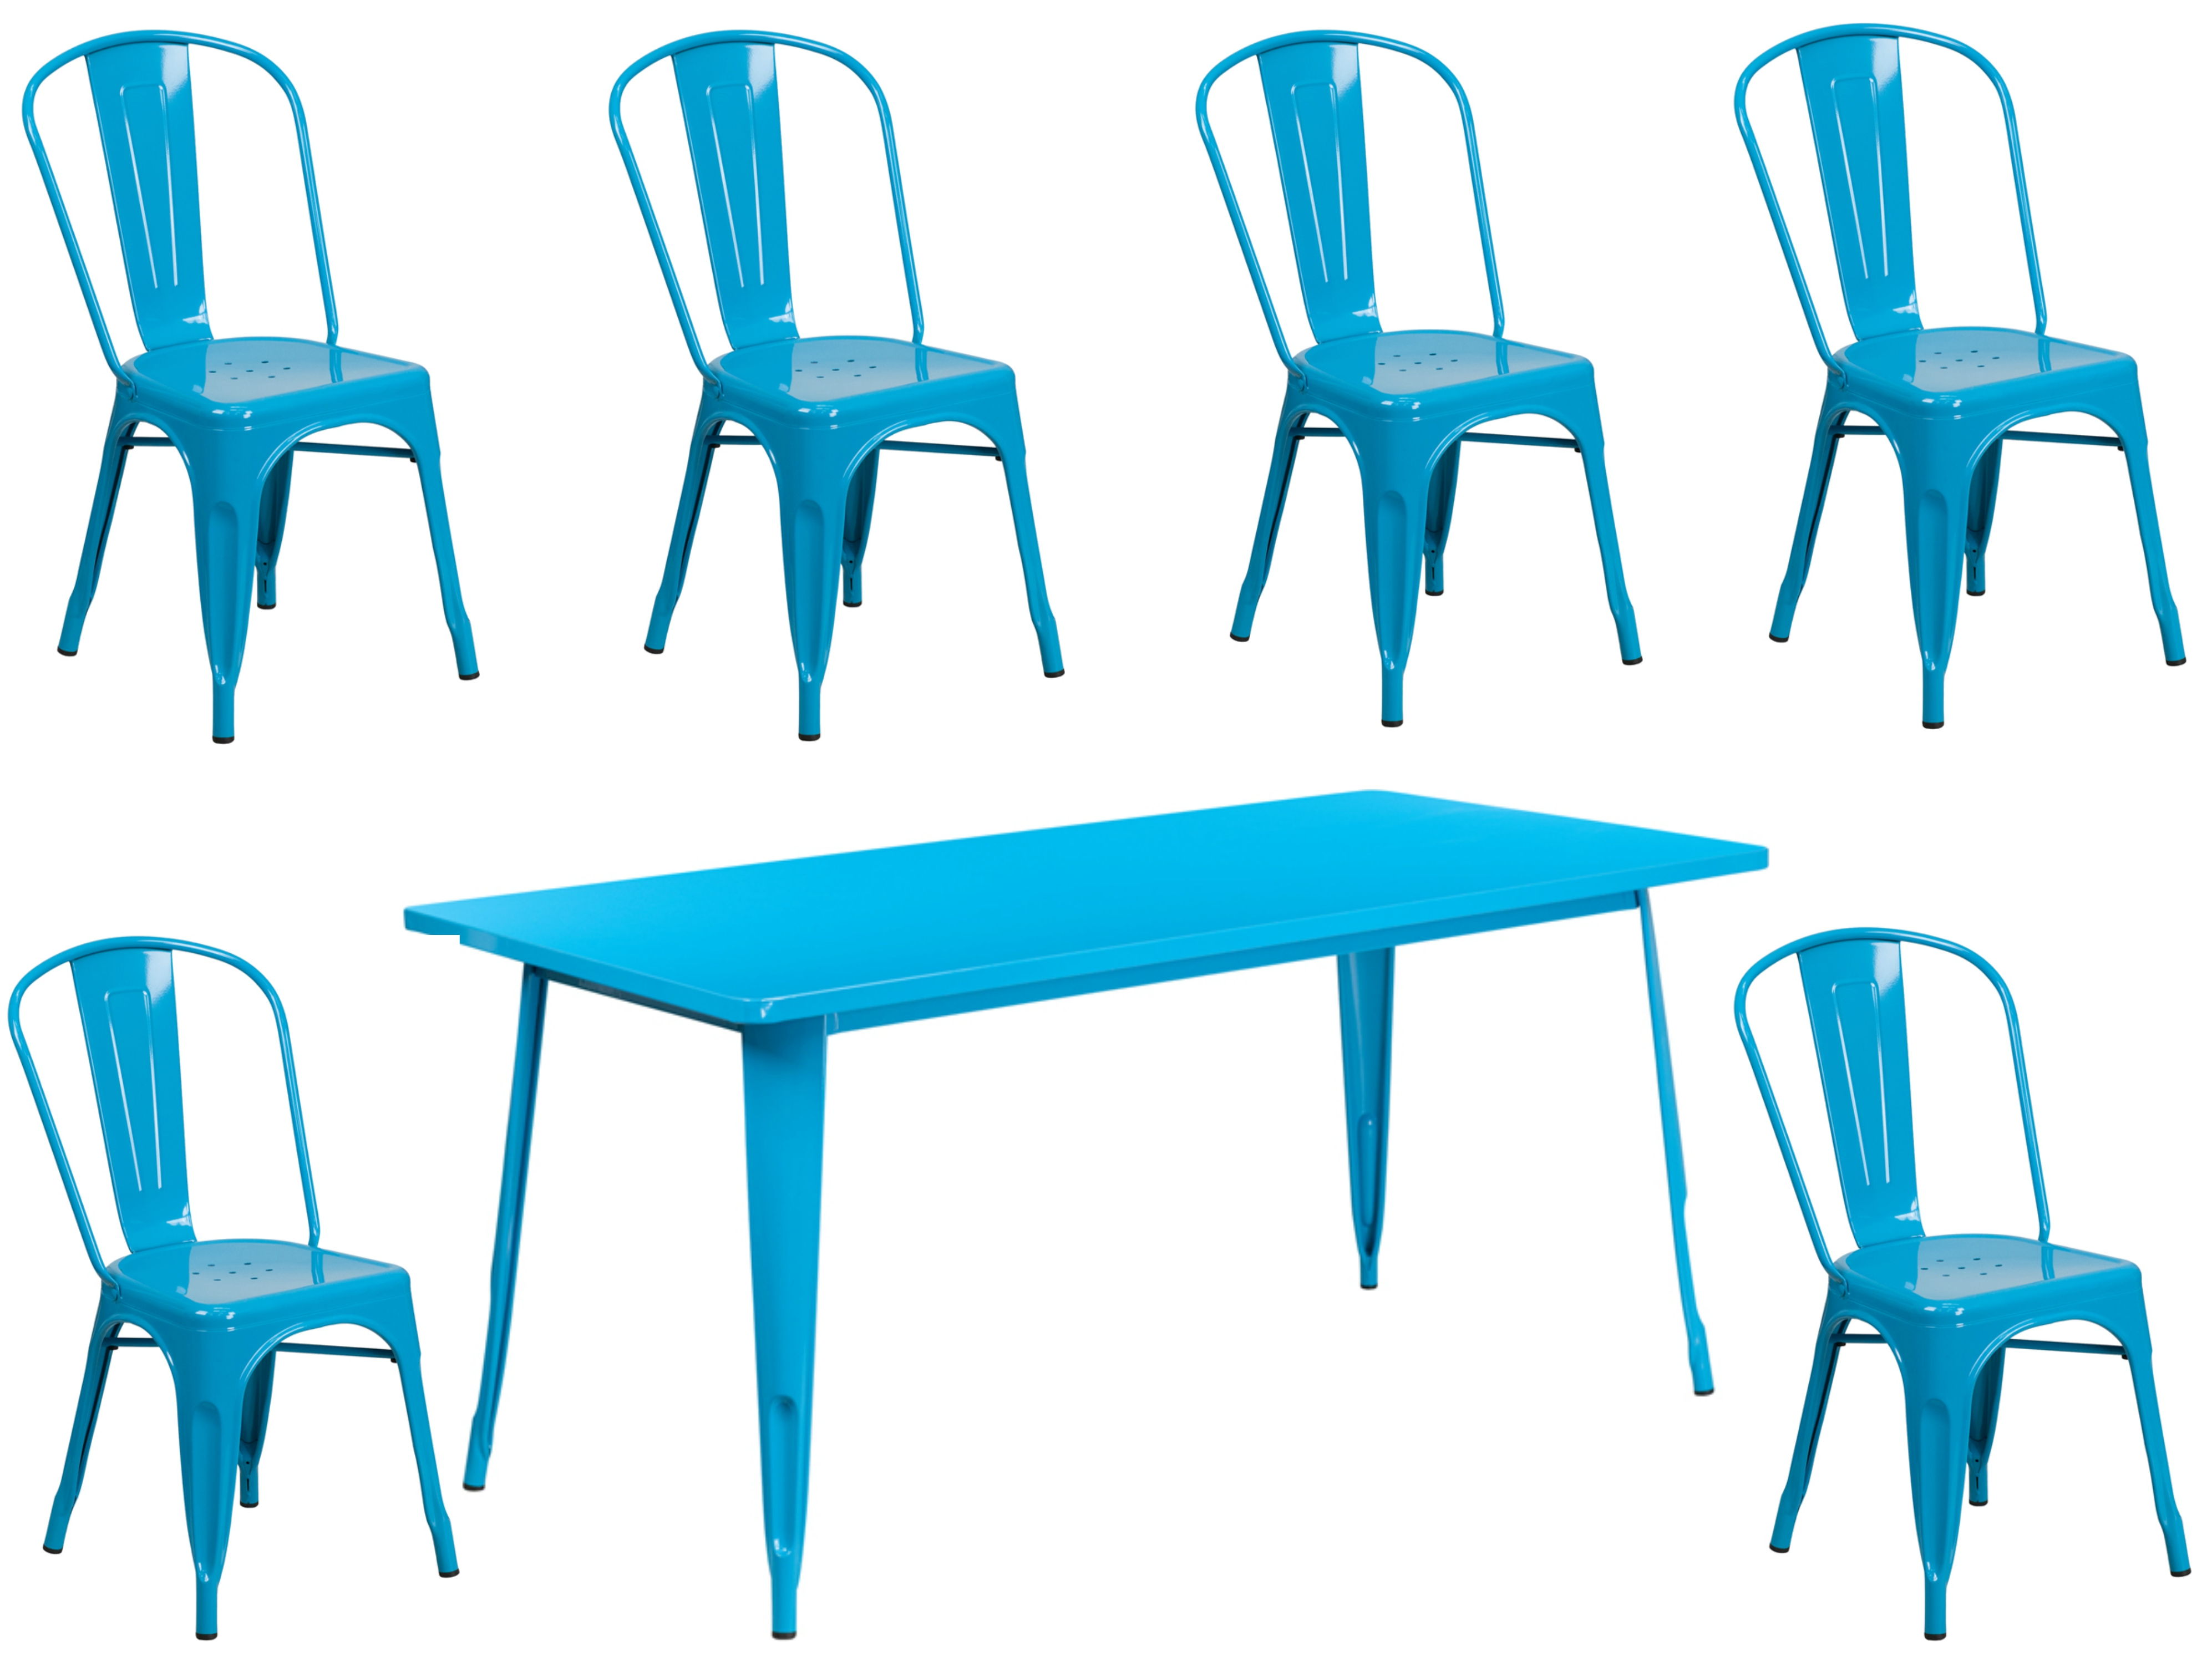 #88 - 31.5'' x 63'' Industrial Crystal Blue Metal Indoor & Outdoor Restaurant Table Set with 6 Stack Chairs